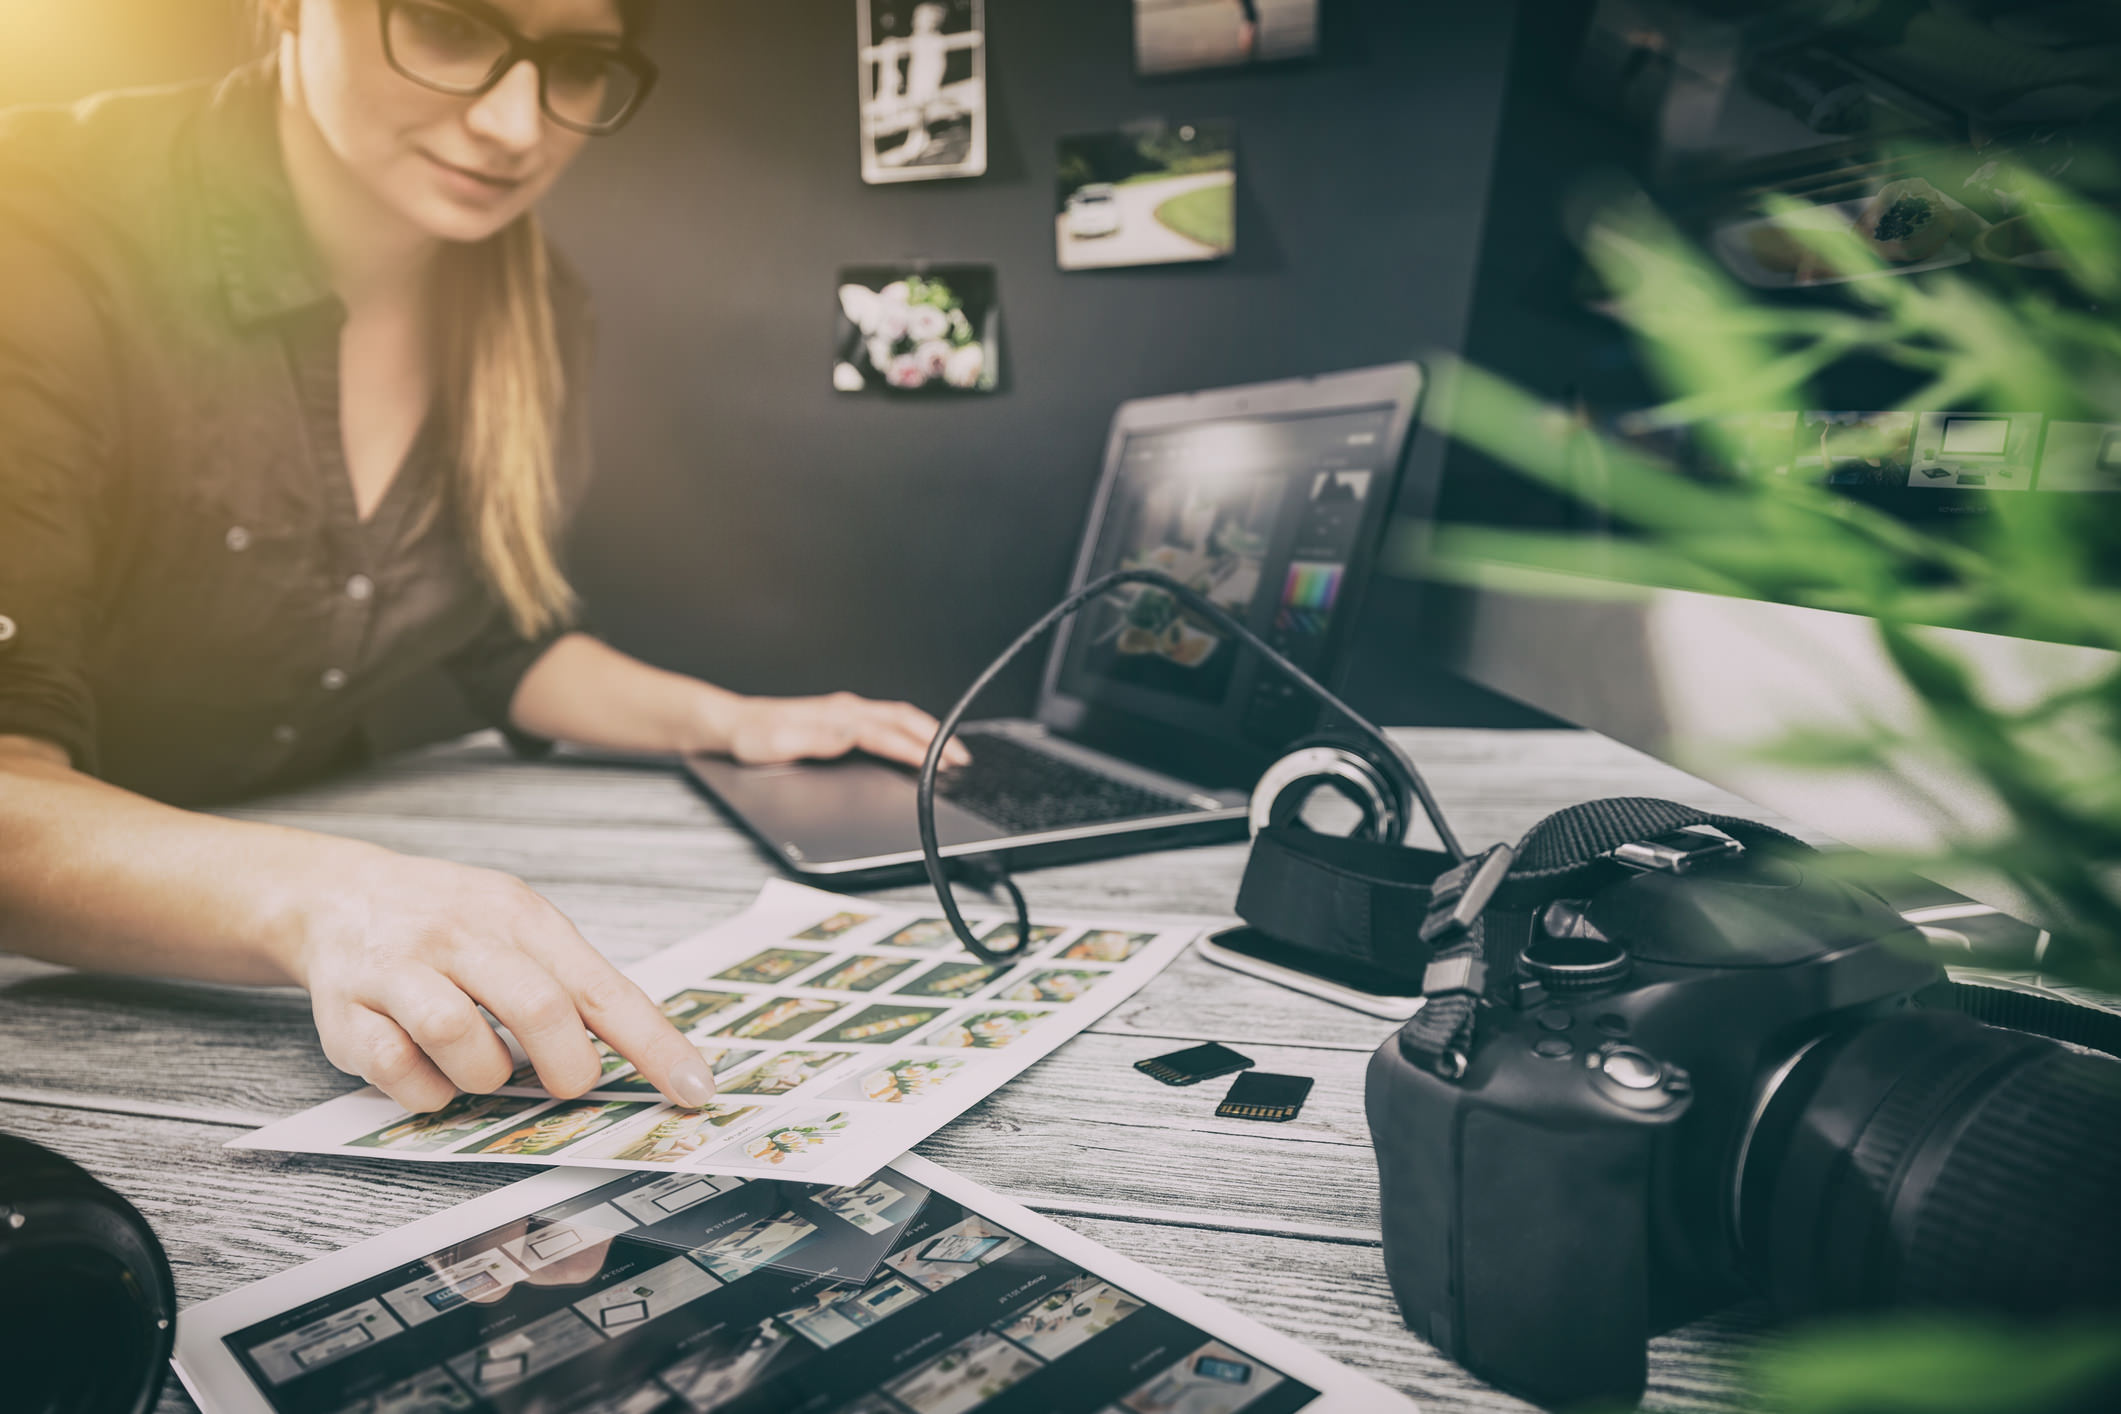 Want to Start a Photography Business? Here's 5 Ways to Get Prepared